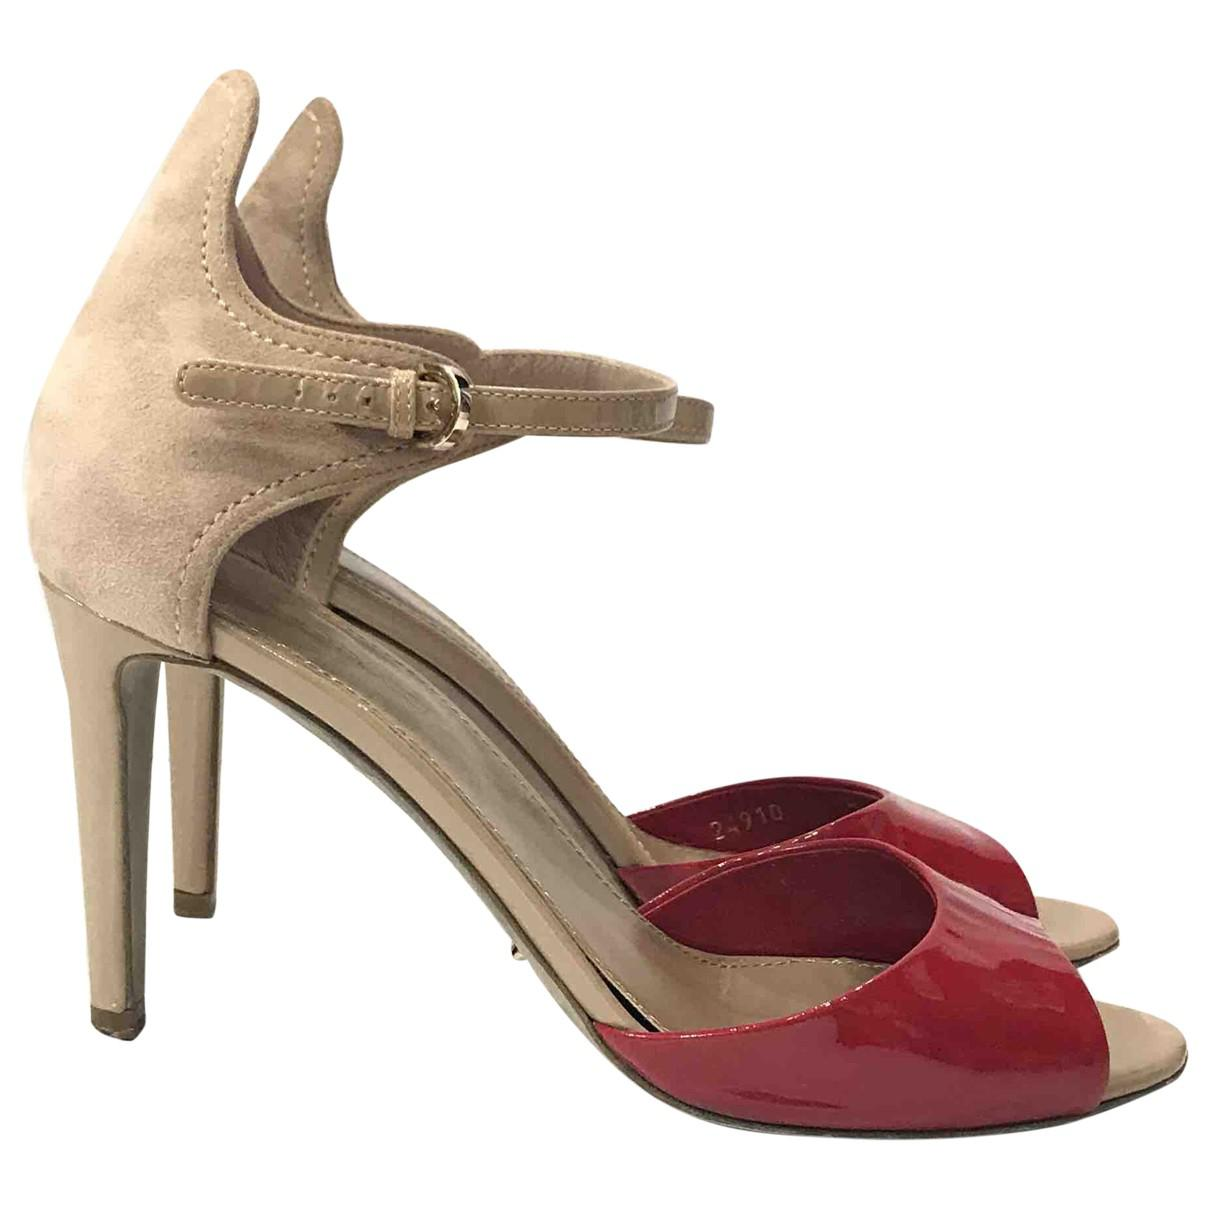 Pre-owned - Leather sandal Sergio Rossi